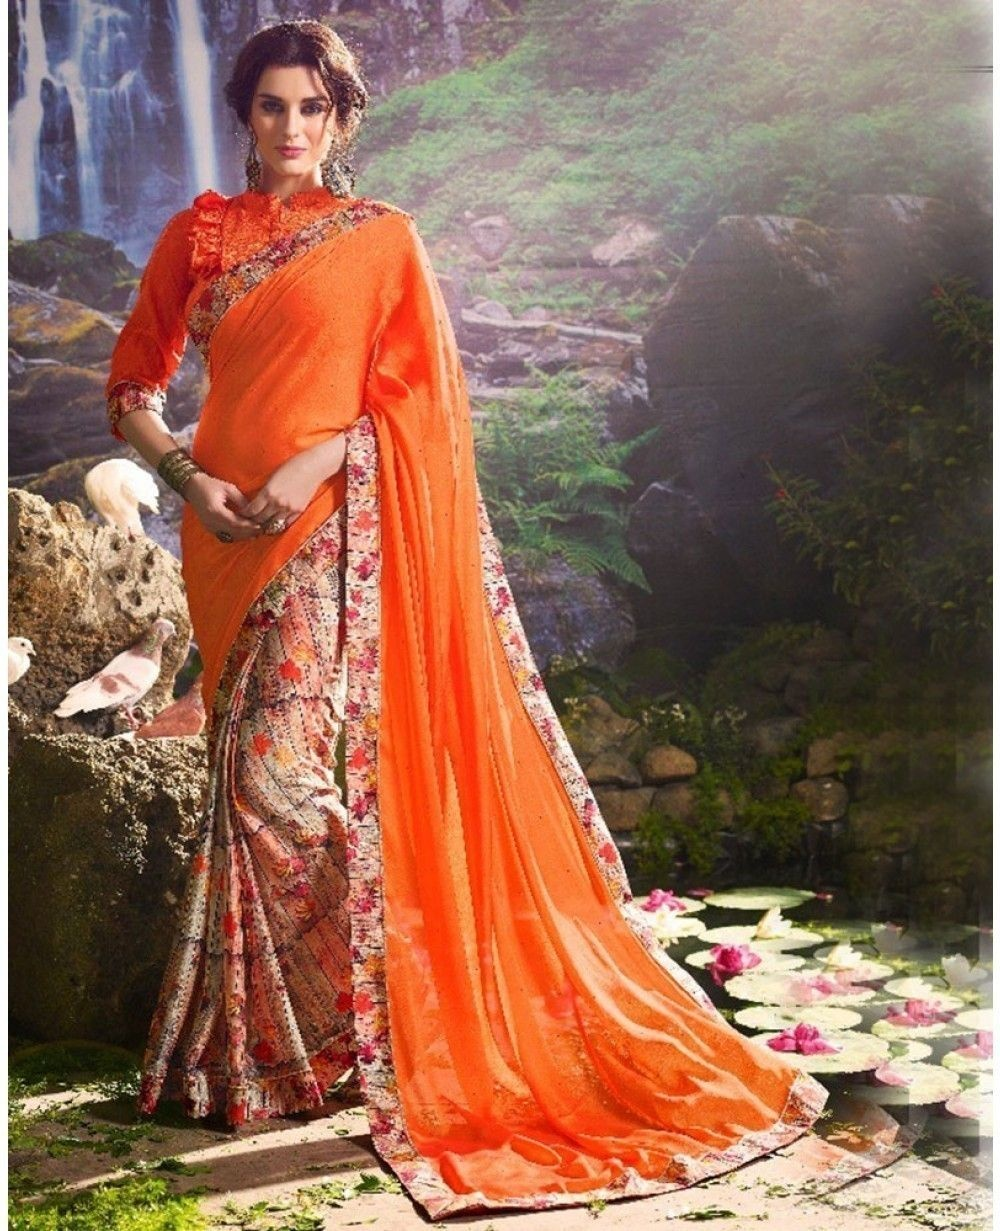 506a0e8c50c738 Gown style sarees  This designer wear offers an indo-western vibe on the  overall look. These days